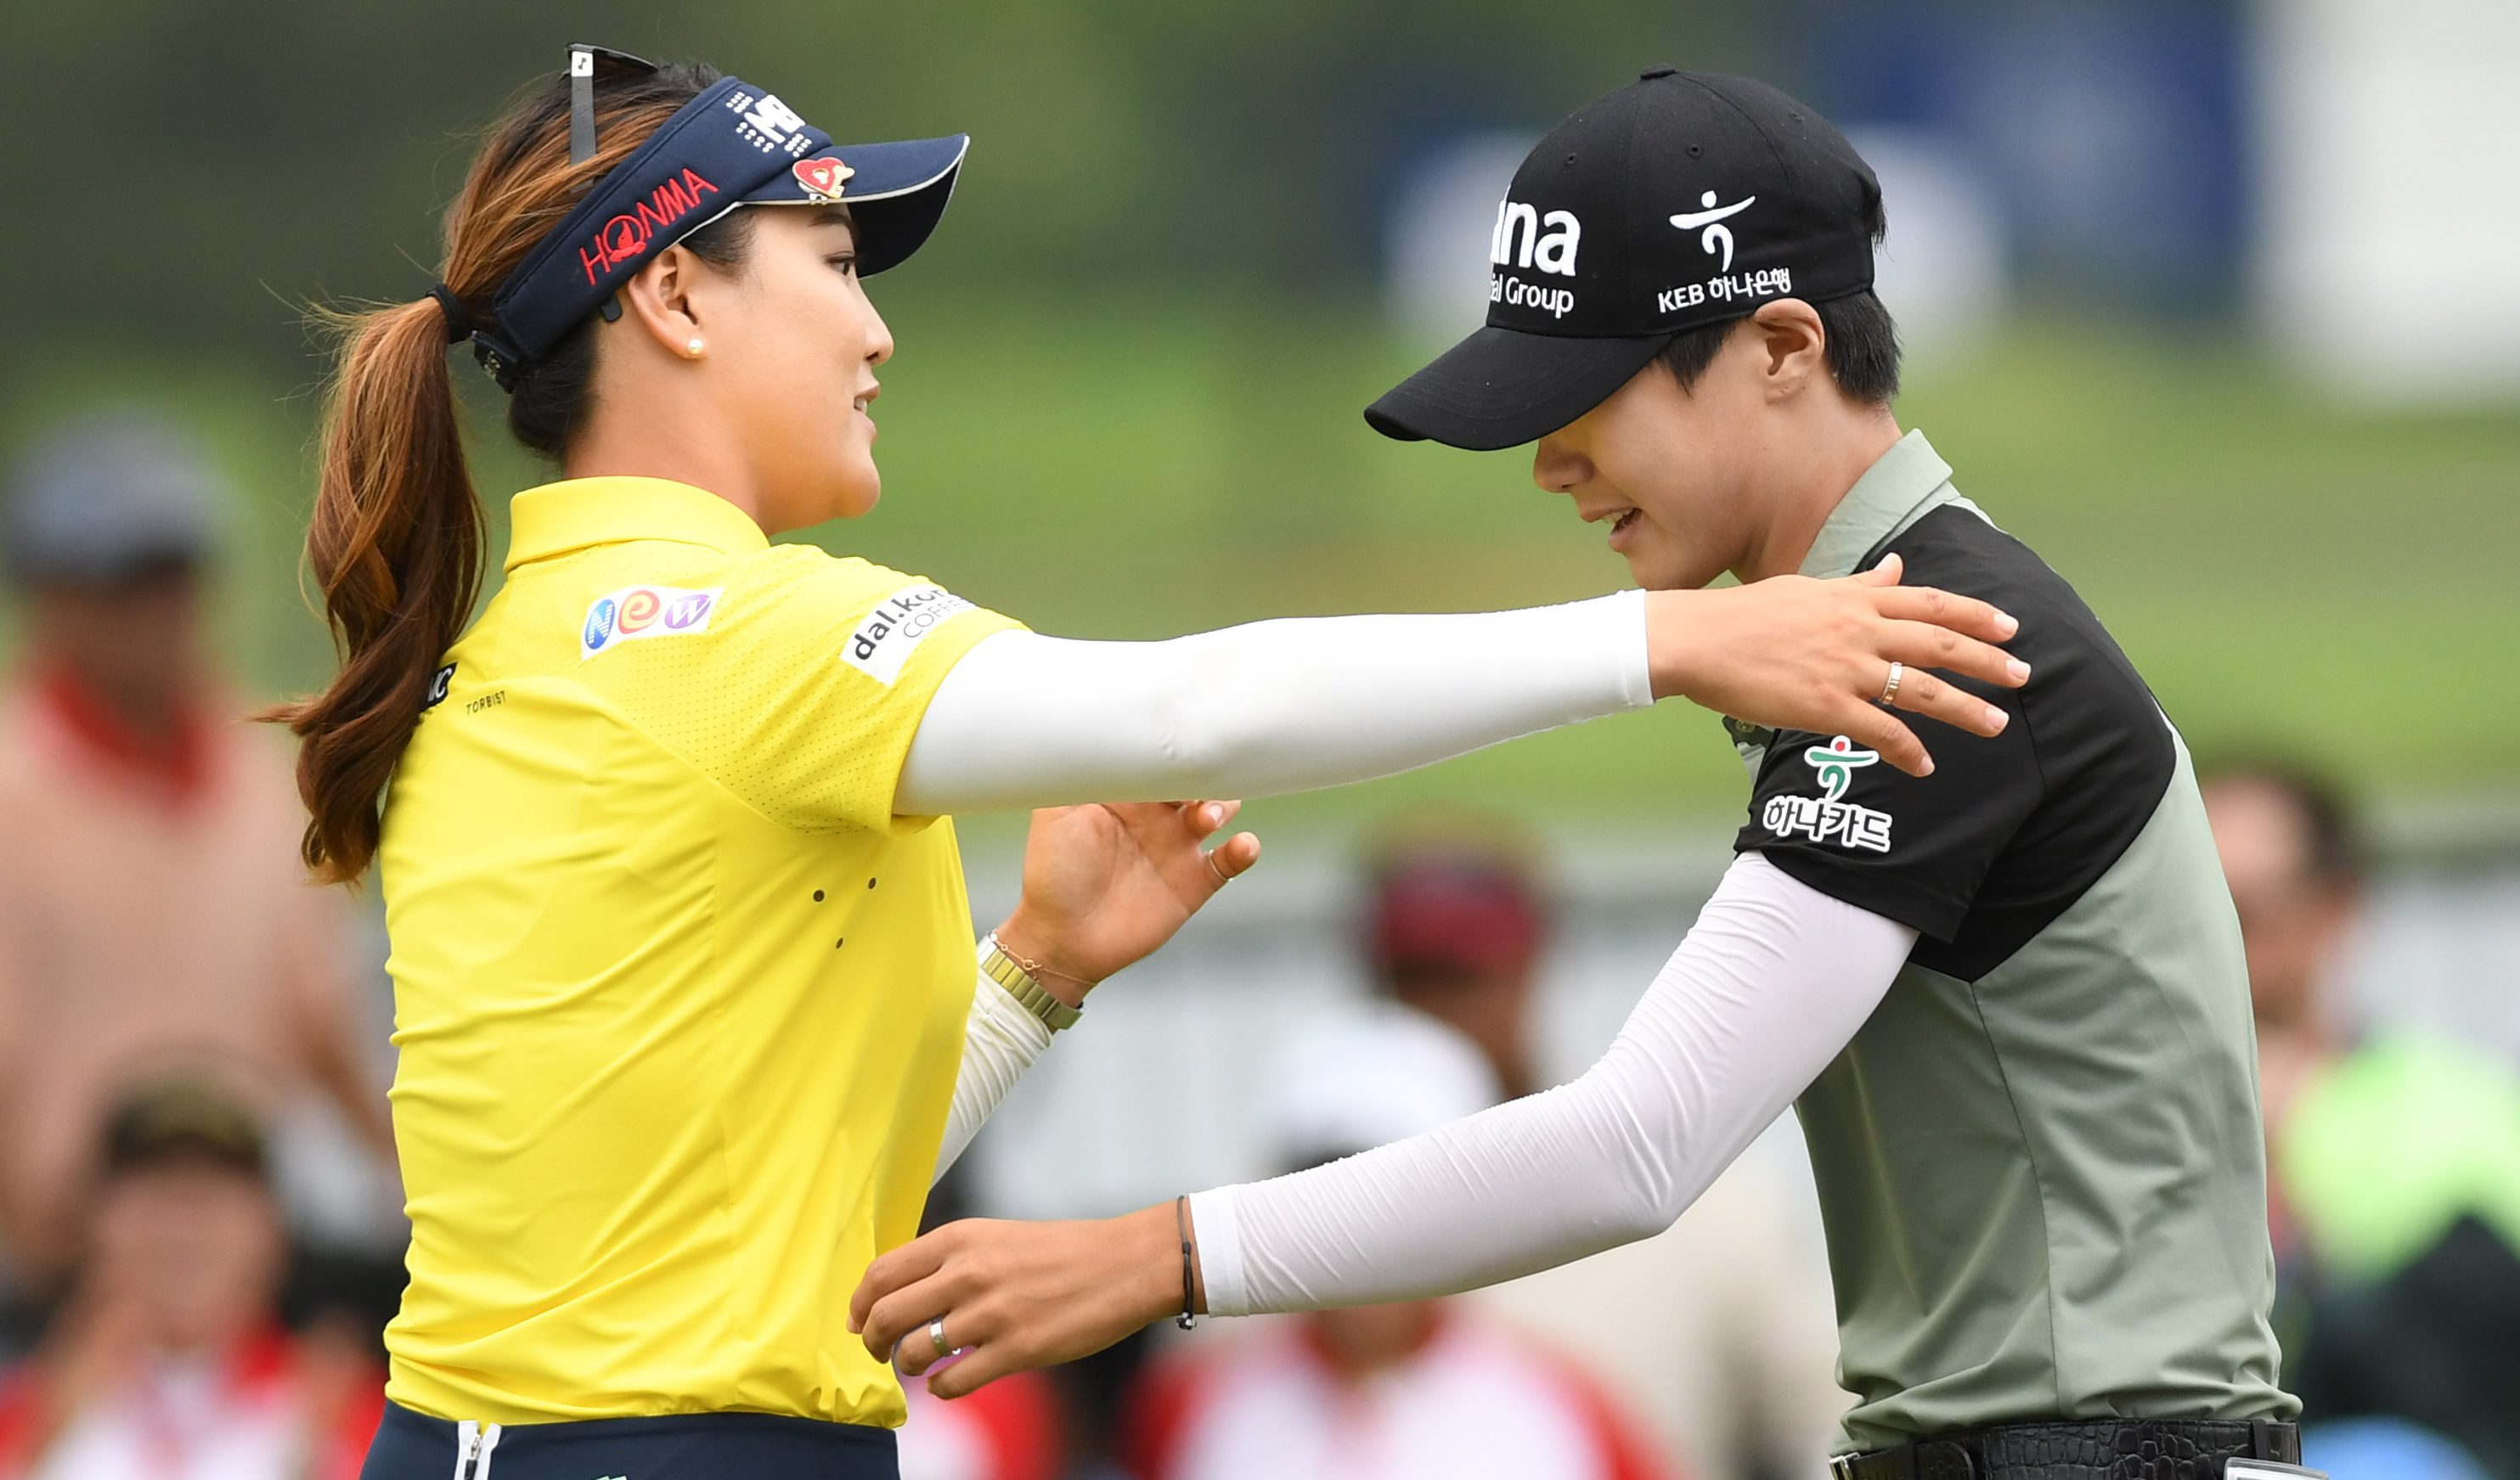 July 1, 2018; Kildeer, IL, USA; So Yeon Ryu (left) hugs Sung Hyun Park (right) after the second playoff hole during the final round of the KPMG Women's PGA Championship golf tournament at Kemper Lakes Golf Club. Mandatory Credit: Thomas J. Russo-USA TODAY Sports